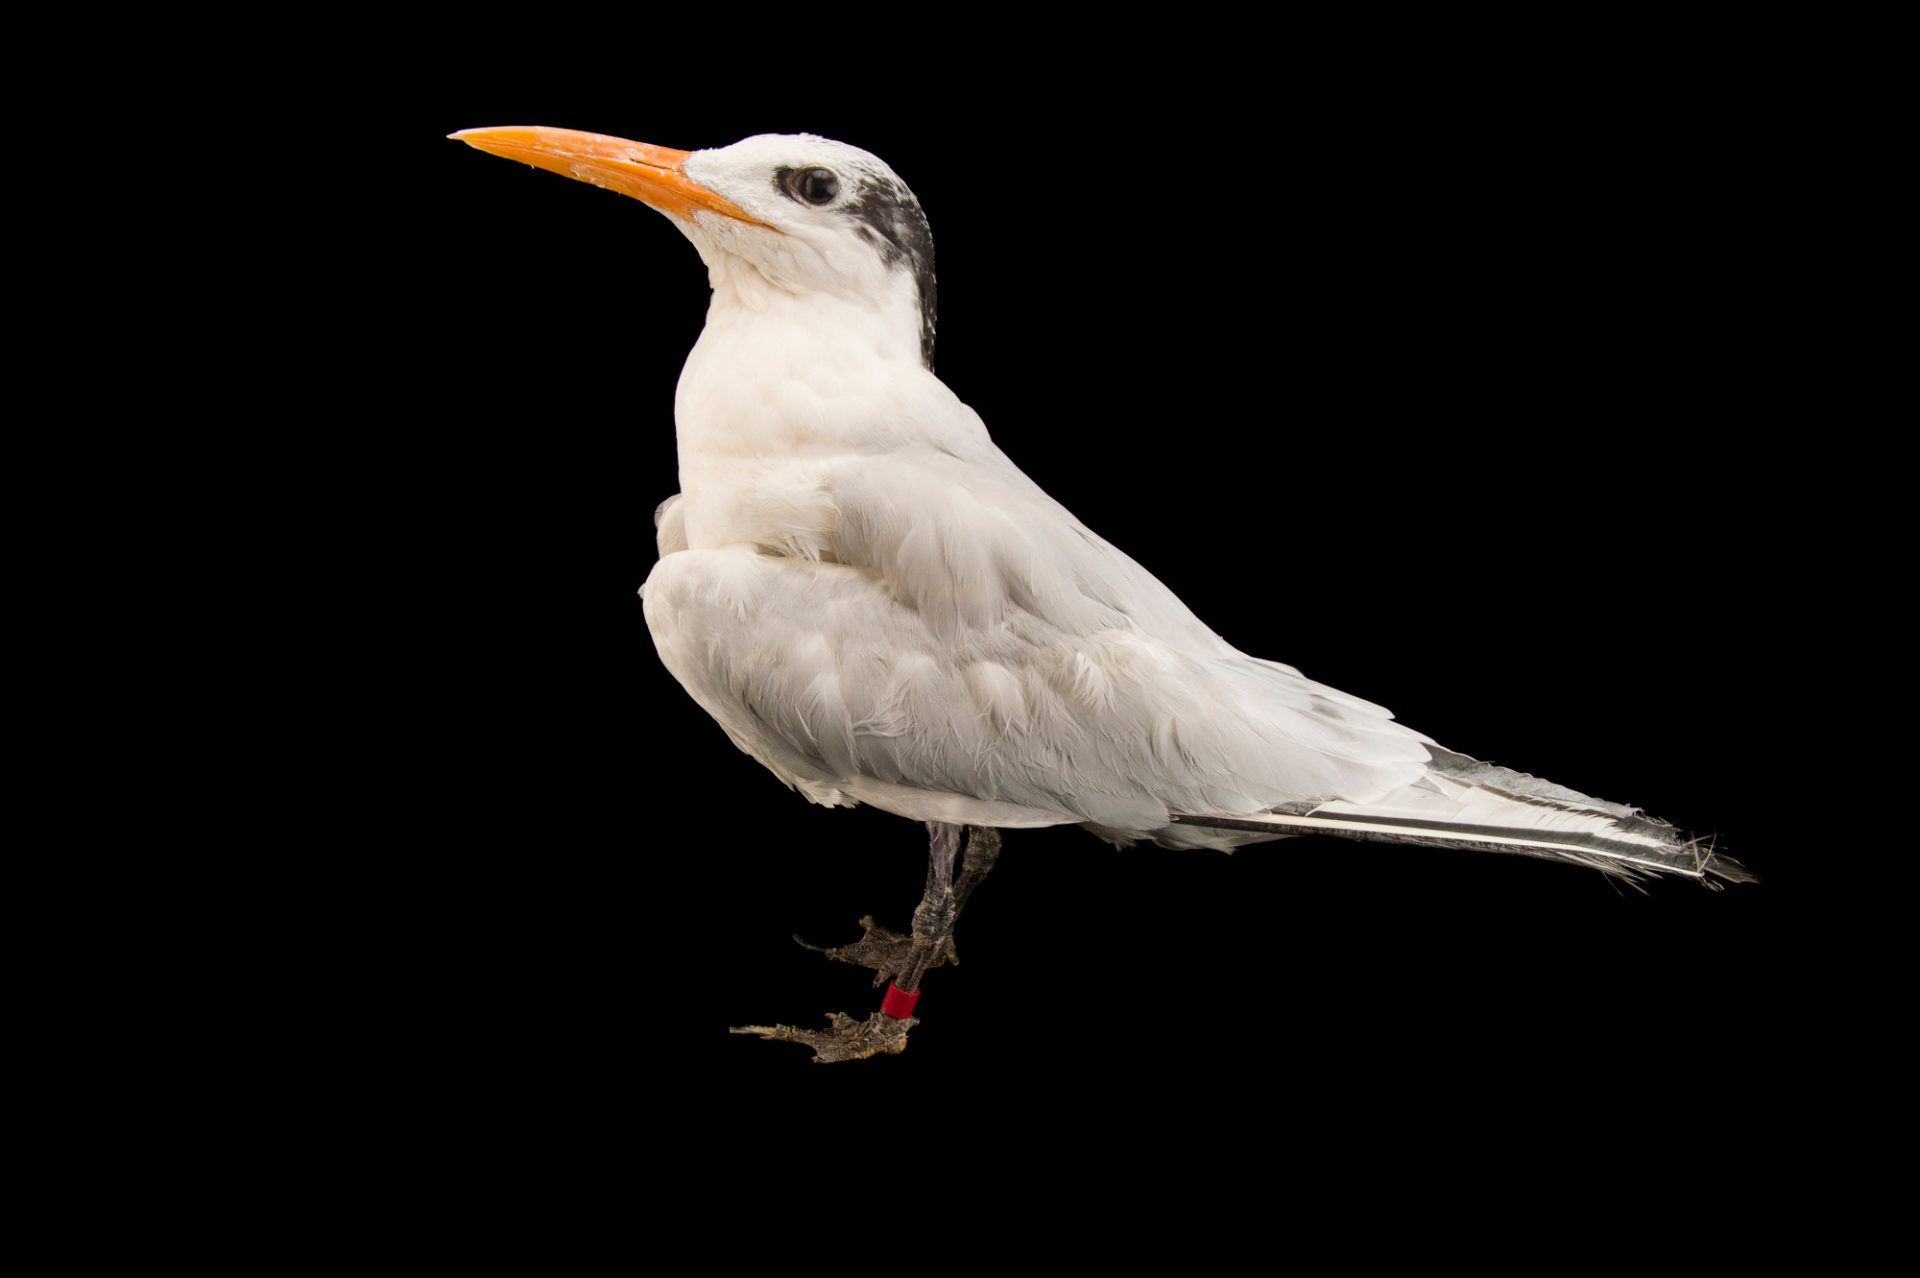 Picture of a royal tern (Thalasseus maximus) at the Tulsa Zoo.